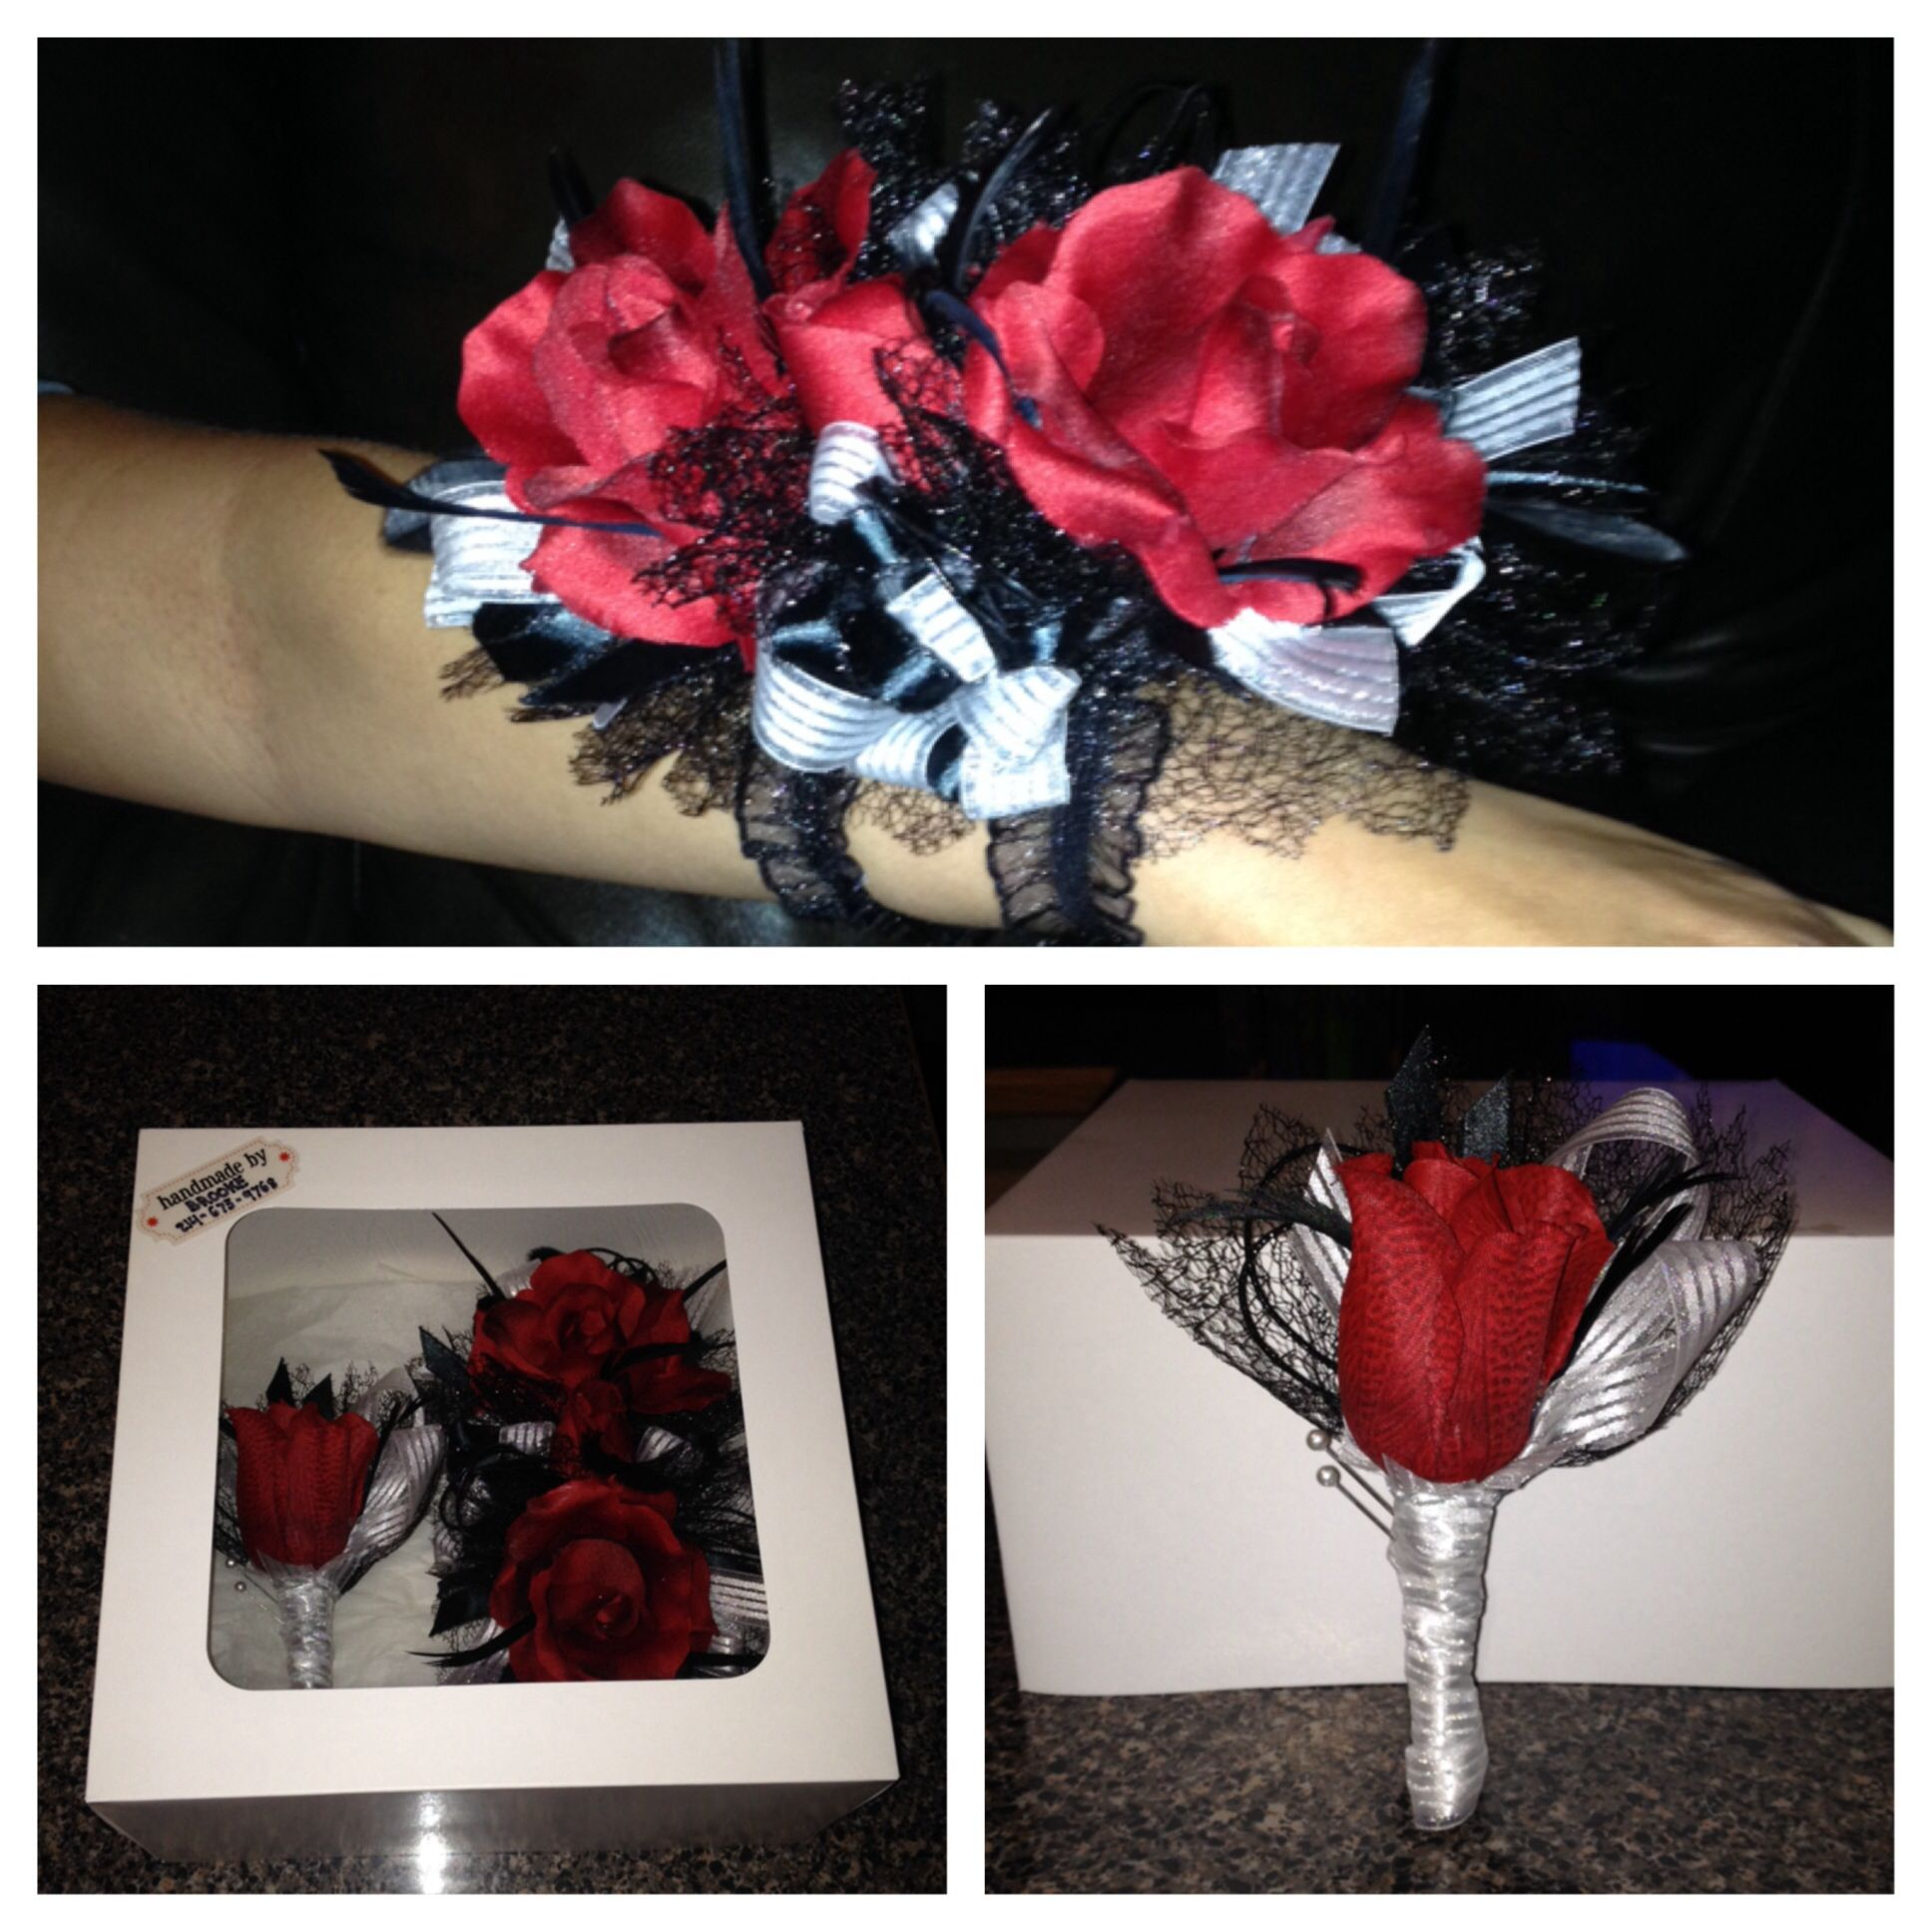 Matching prom corsage and boutonniere set by brooke 60 40 for 40 for corsage20 for boutonnire individual orders are accepted made with silk flowers can be made with real flowers for additional cost mightylinksfo Images